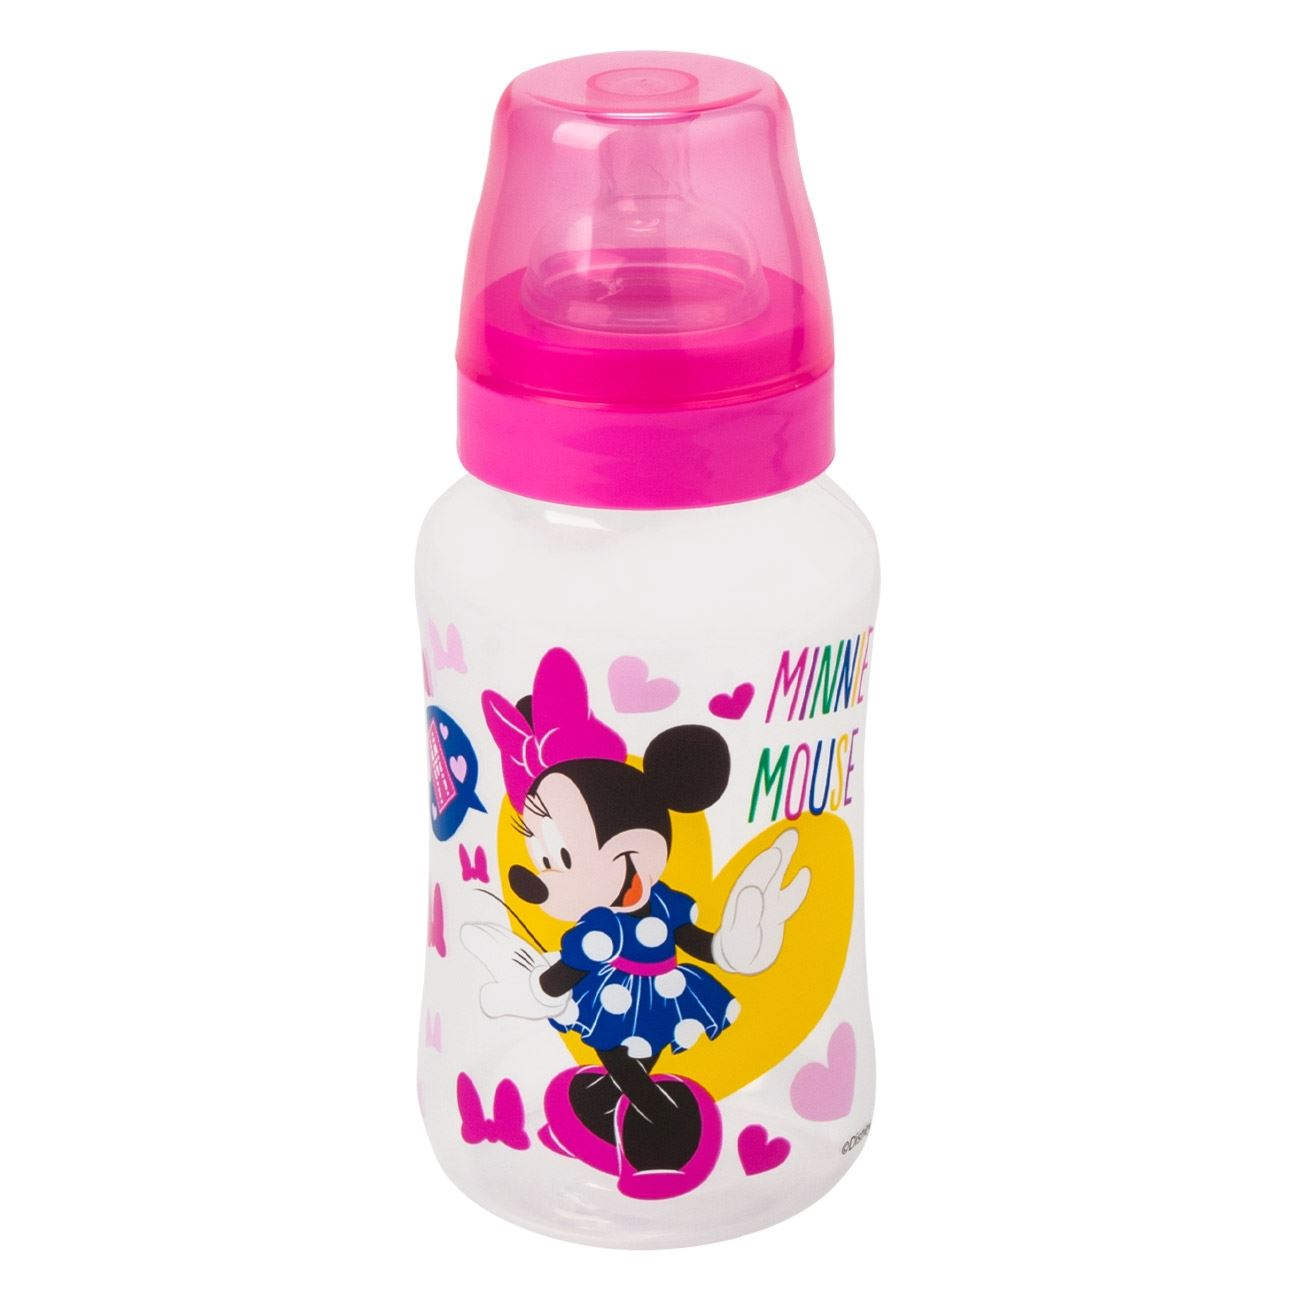 Minnie egér cumisüveg 330 ml